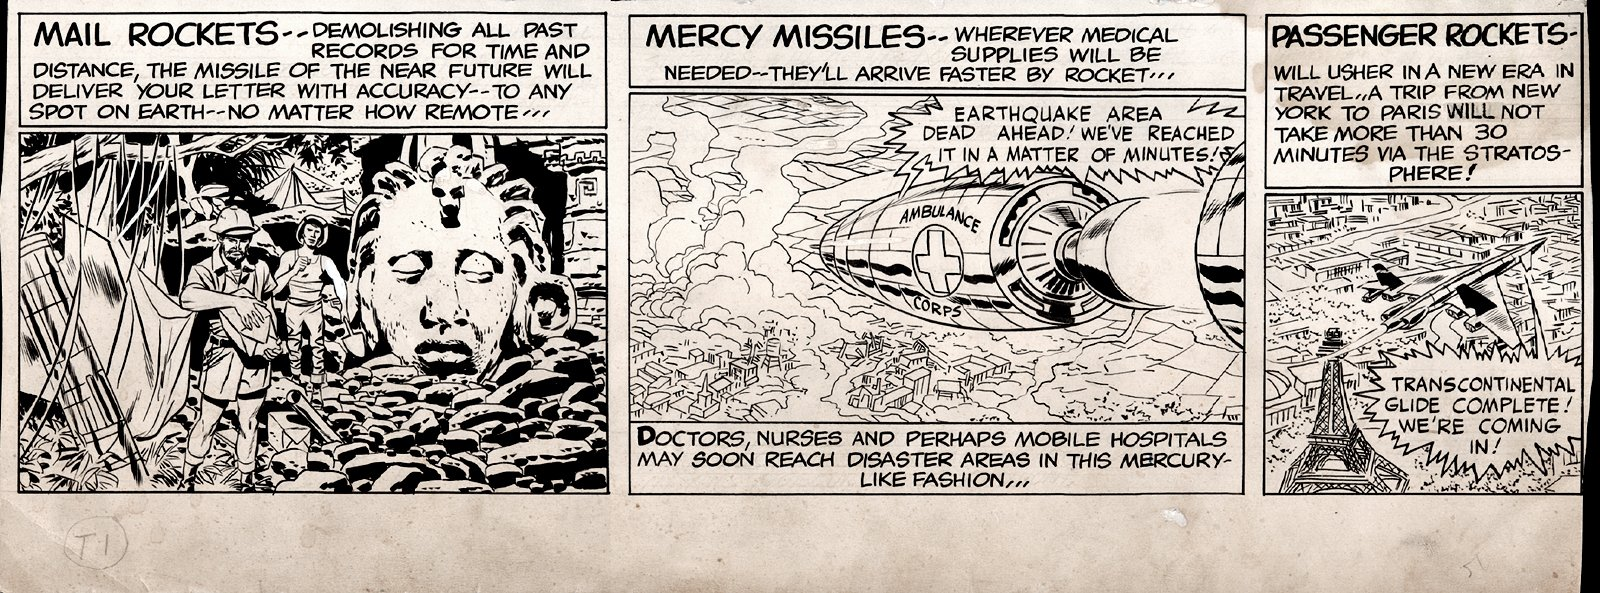 SKY MASTERS Bottom 1/3 Sunday Strip Art 5-24-1959